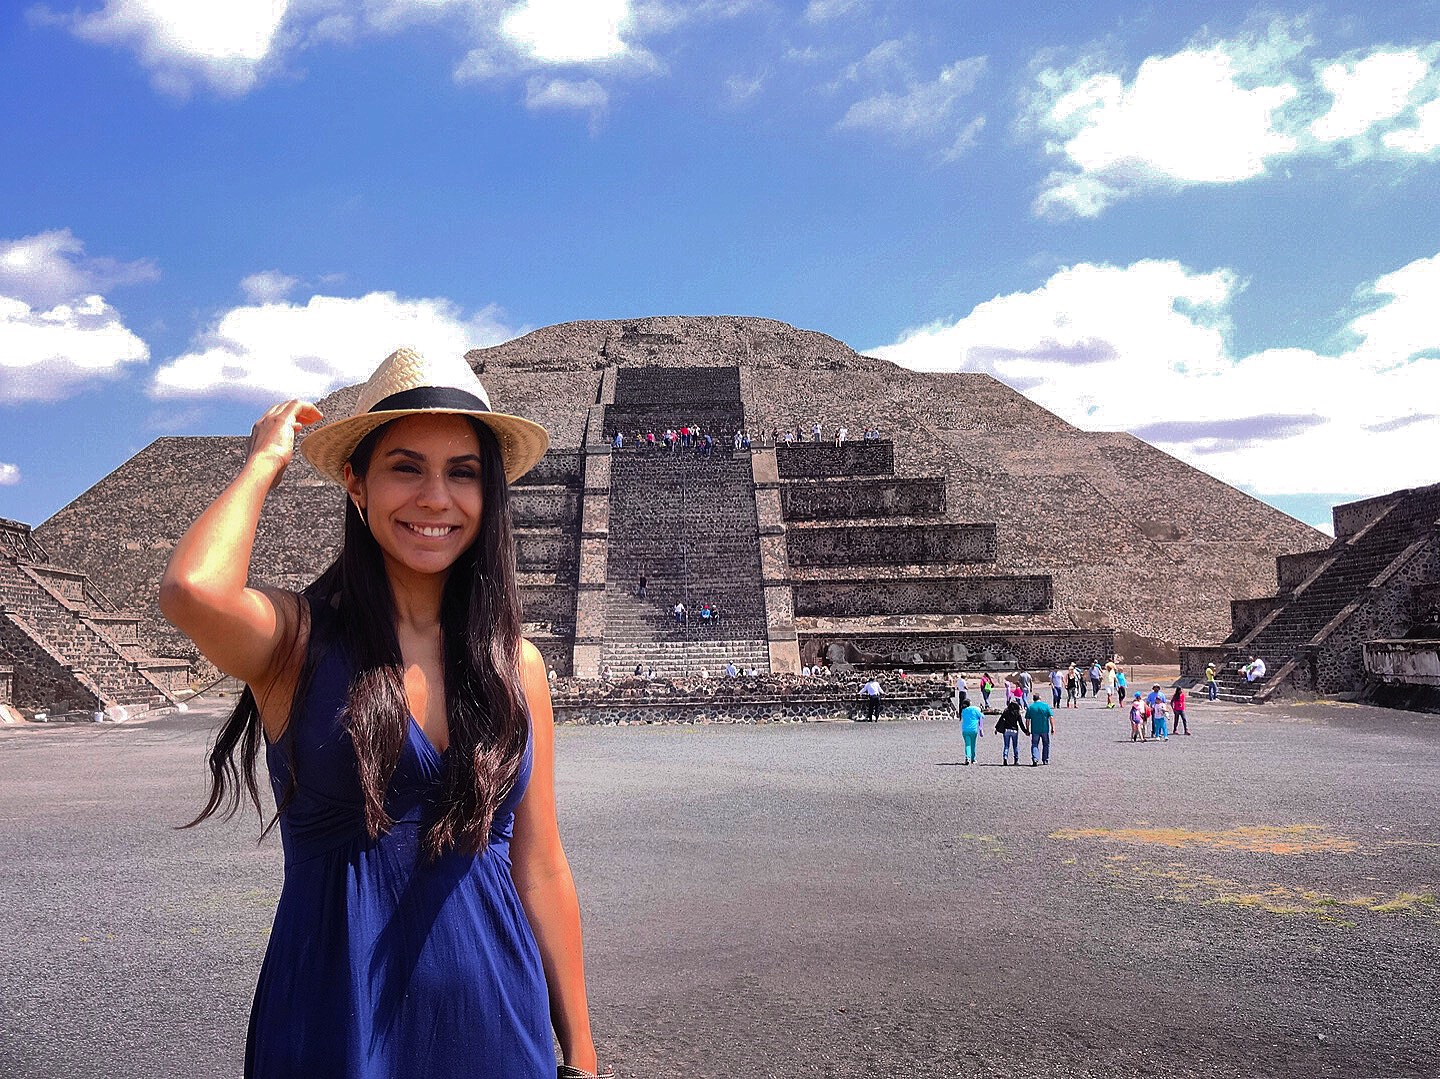 Teotihuacan: City of Gods in Mexico